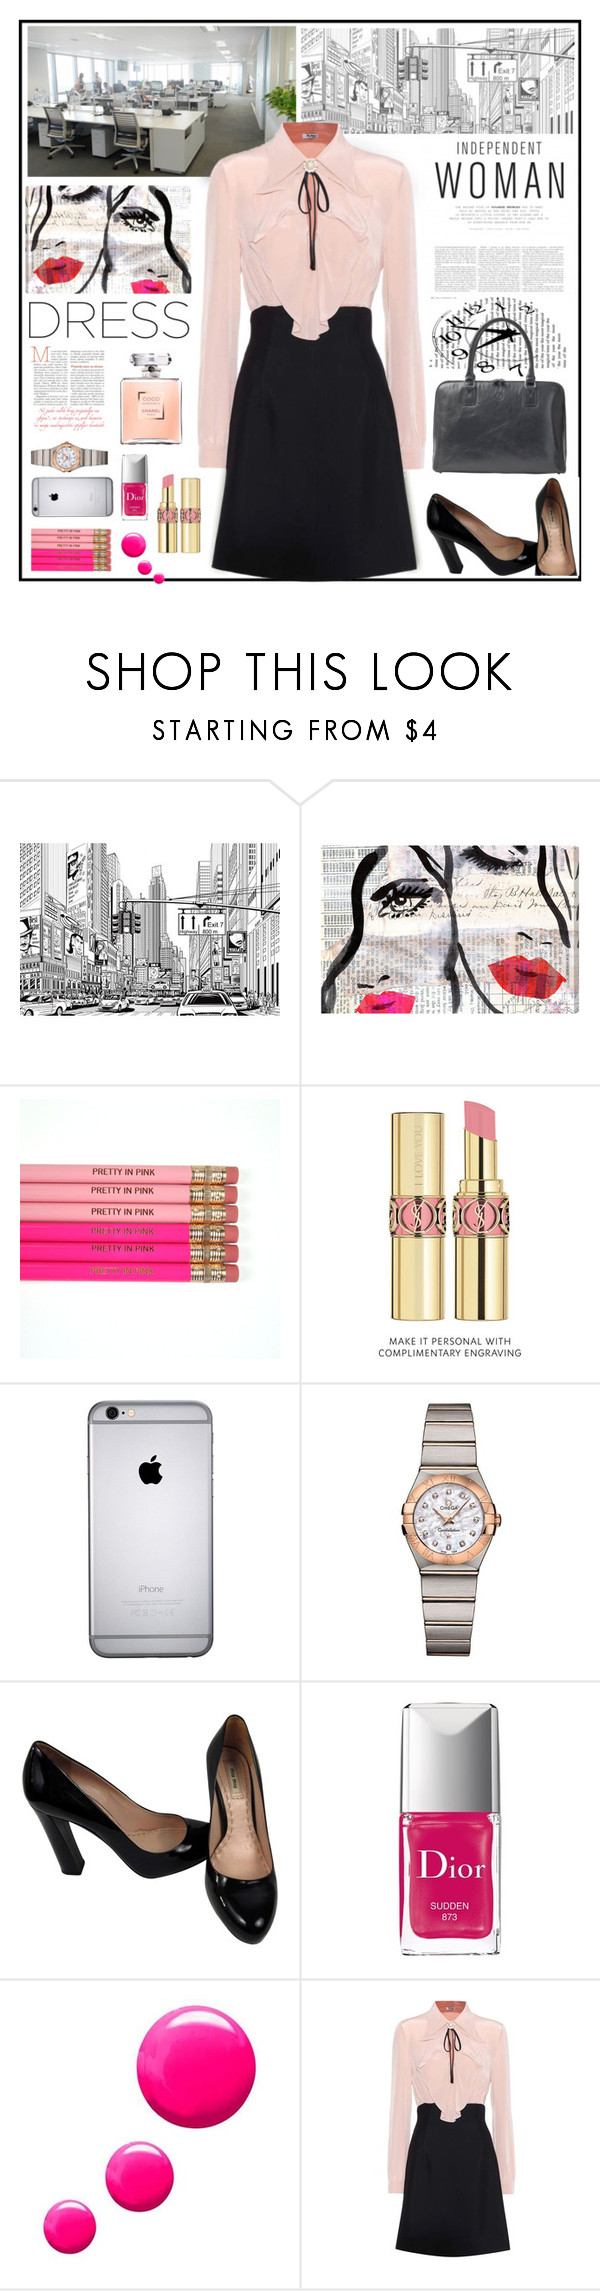 """Independent Woman"" by pumsiks ❤ liked on Polyvore featuring Oliver Gal Artist Co., Yves Saint Laurent, OMEGA, Miu Miu, Christian Dior, Topshop and Maxwell Scott Bags"